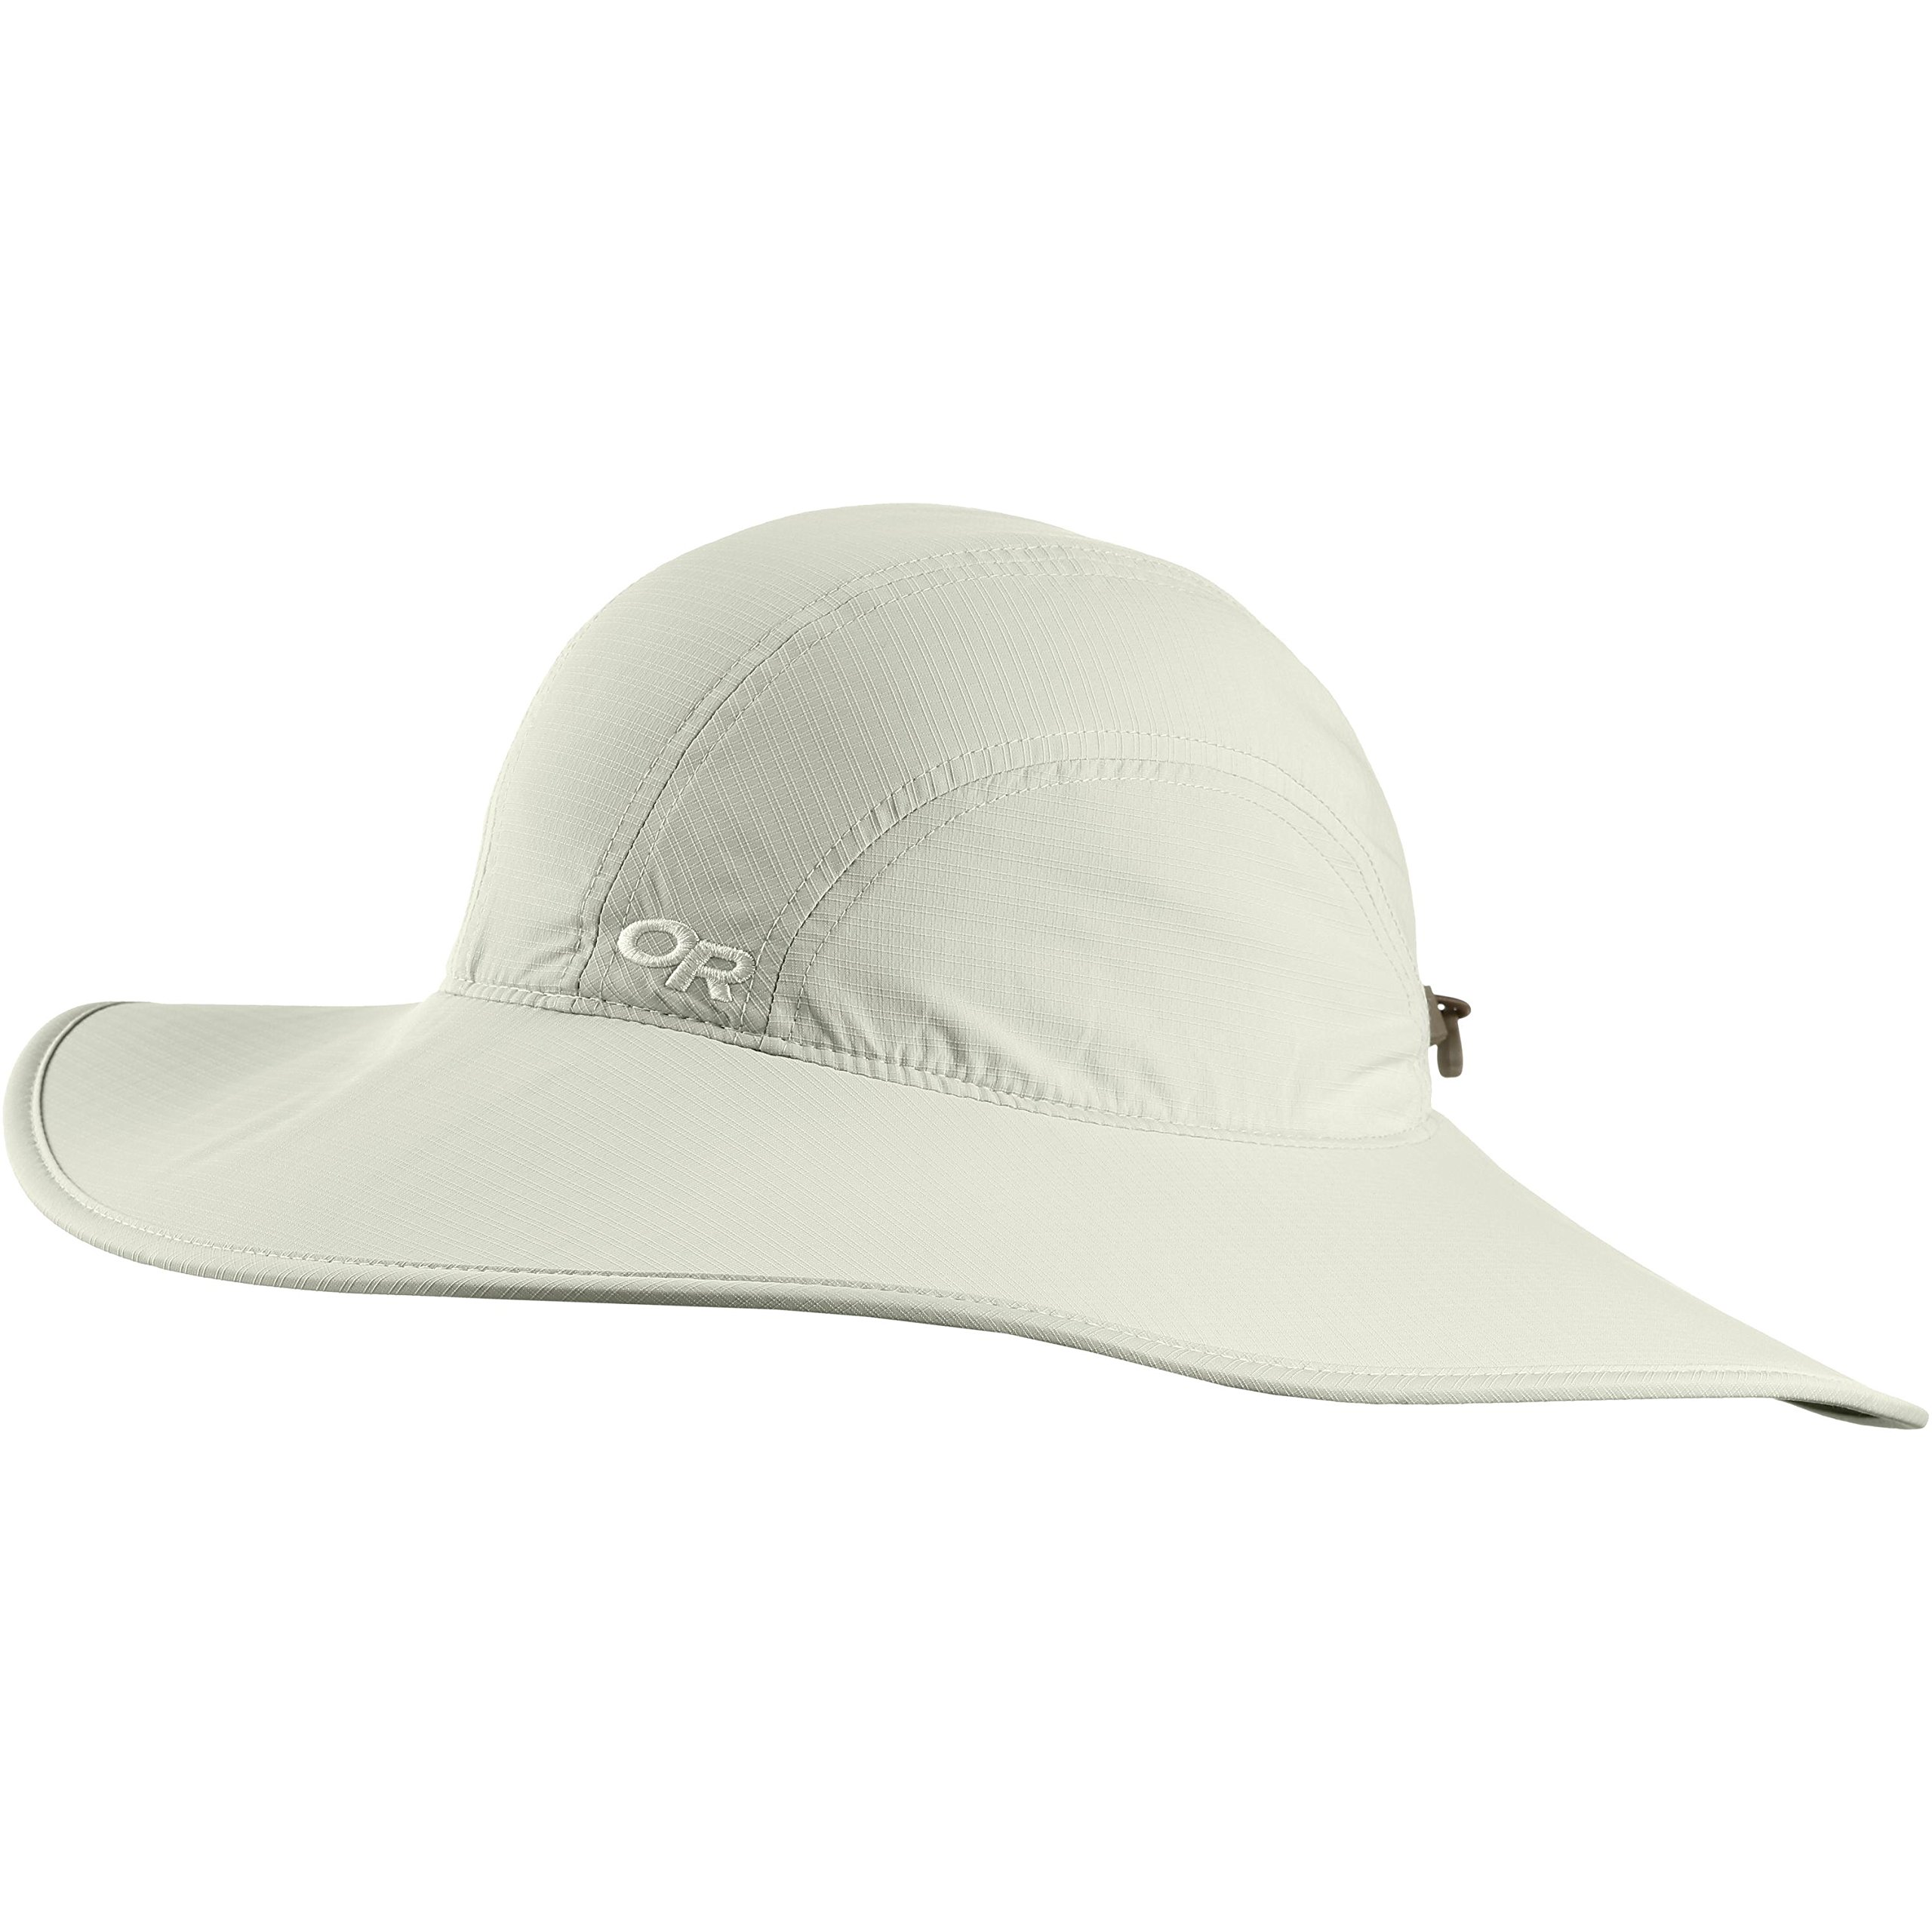 Outdoor Research Oasis Sun Sombrero Wmn Sand Sm by Outdoor Research